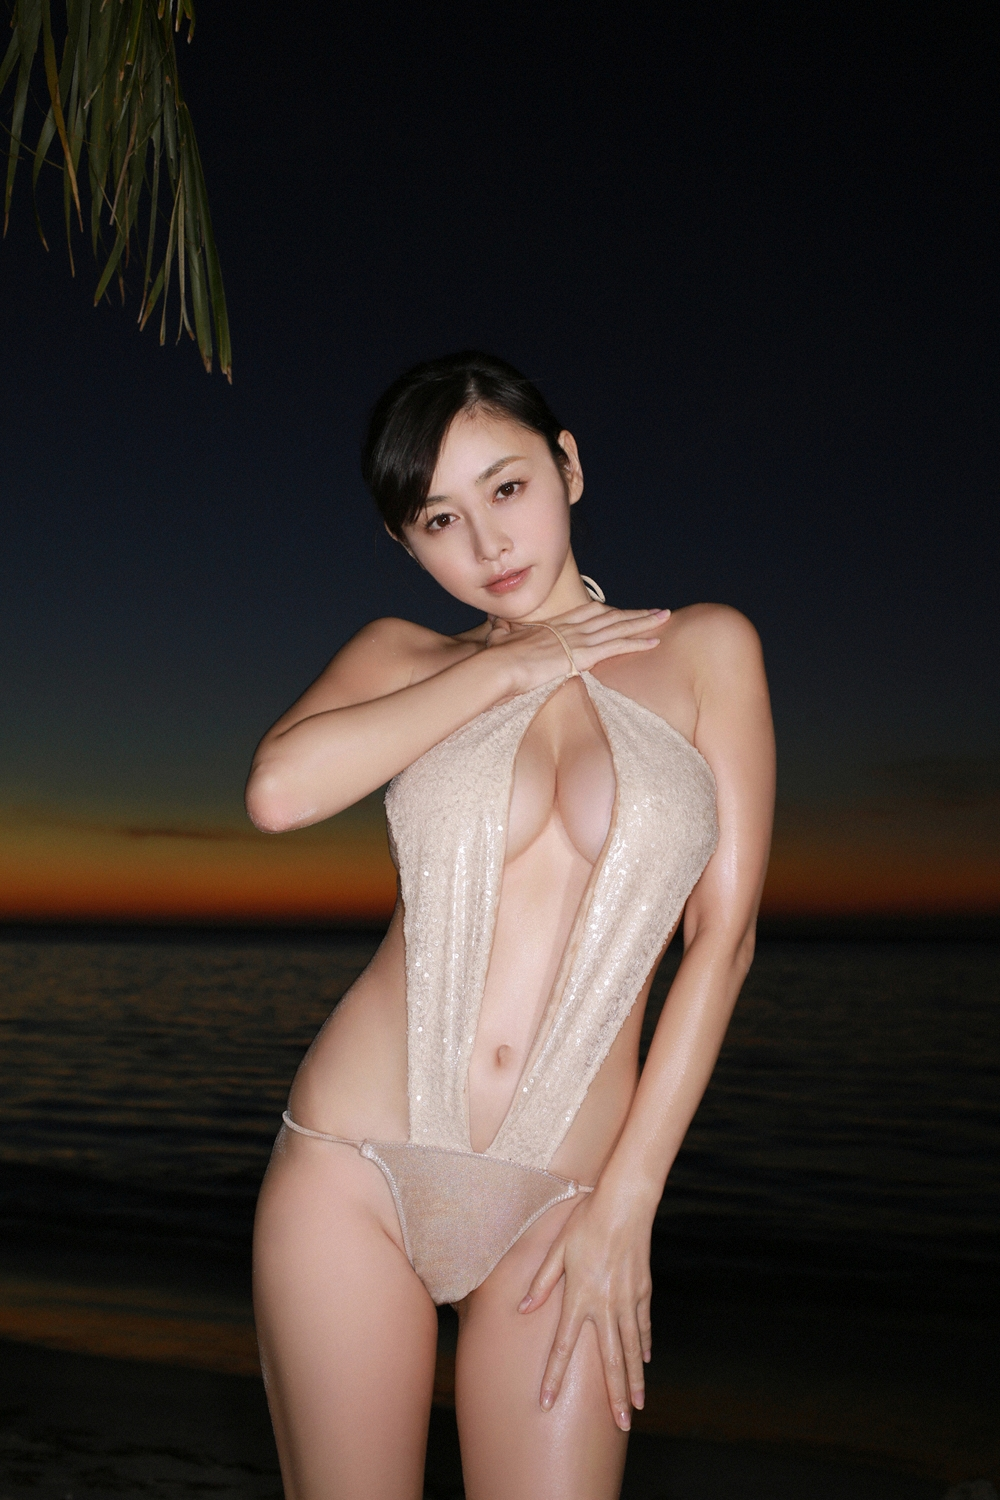 杉原杏璃 Anri Sugihara YS Web Vol 655 Pictures 64